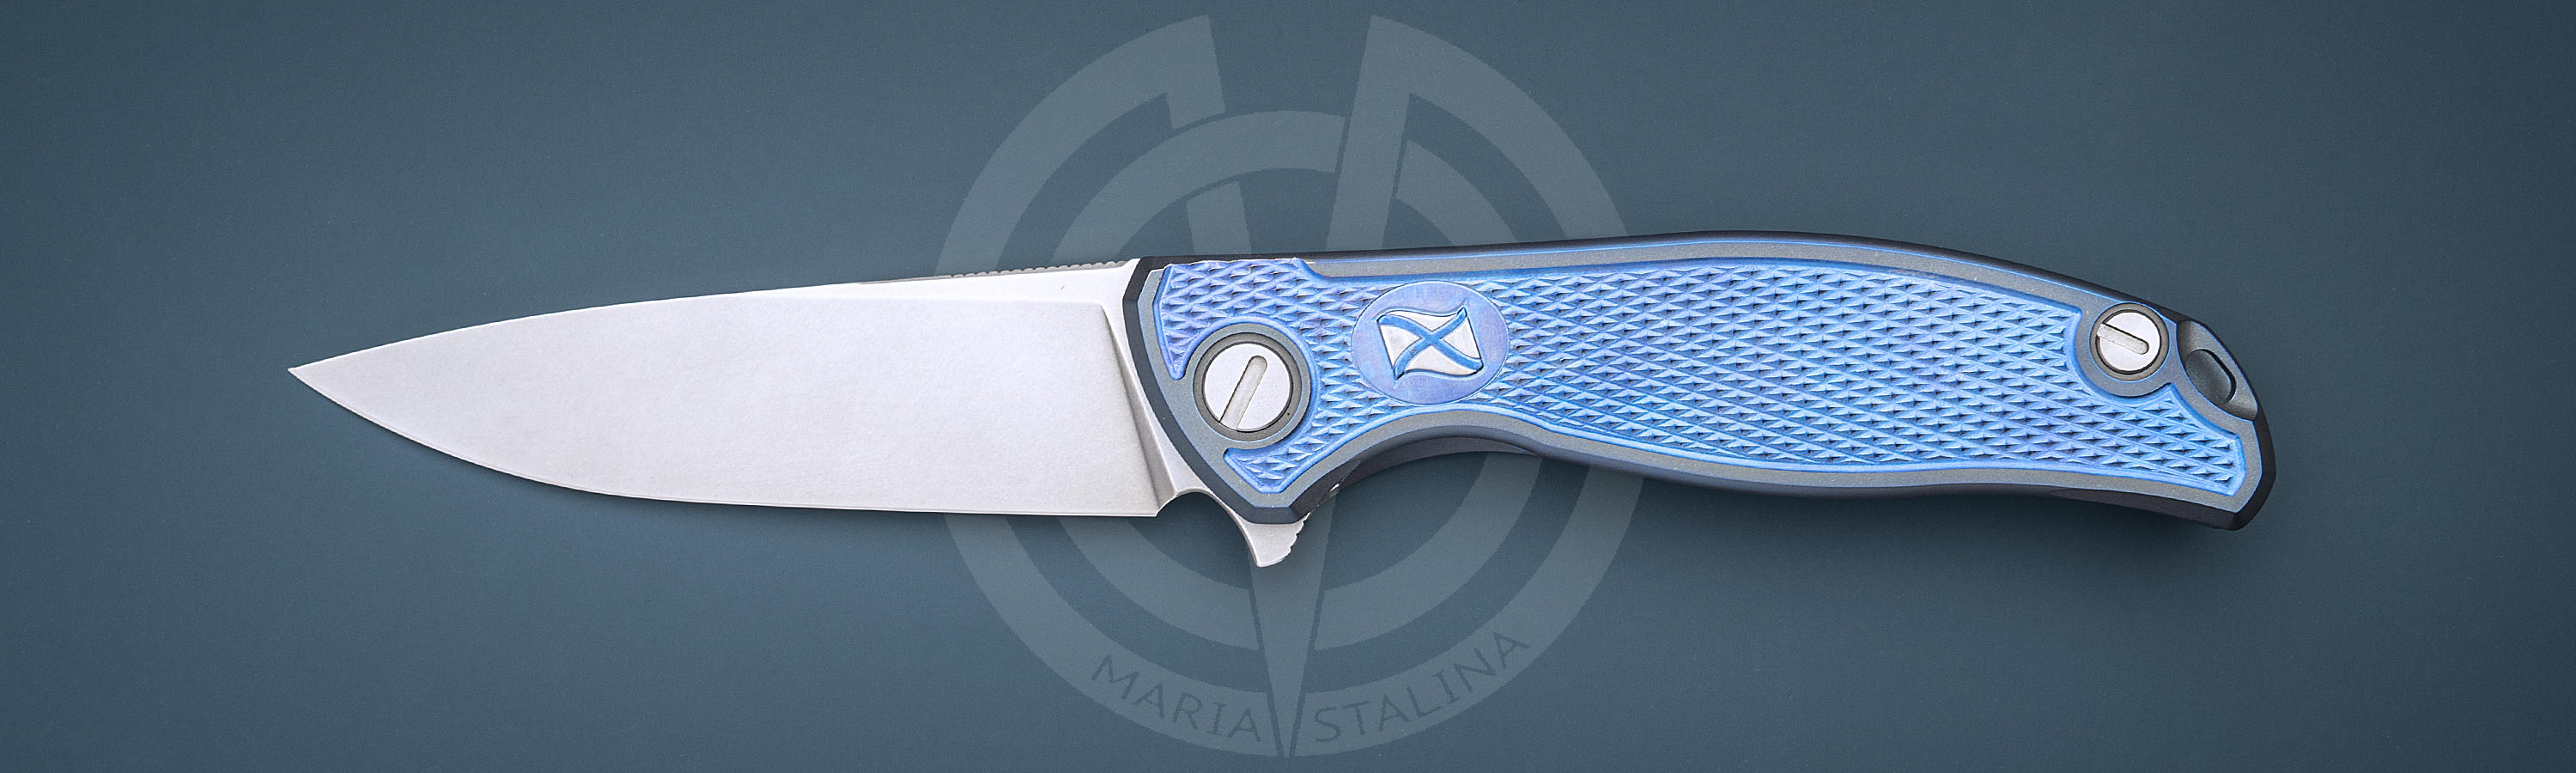 SBW Flipper 95 customization Nasgul